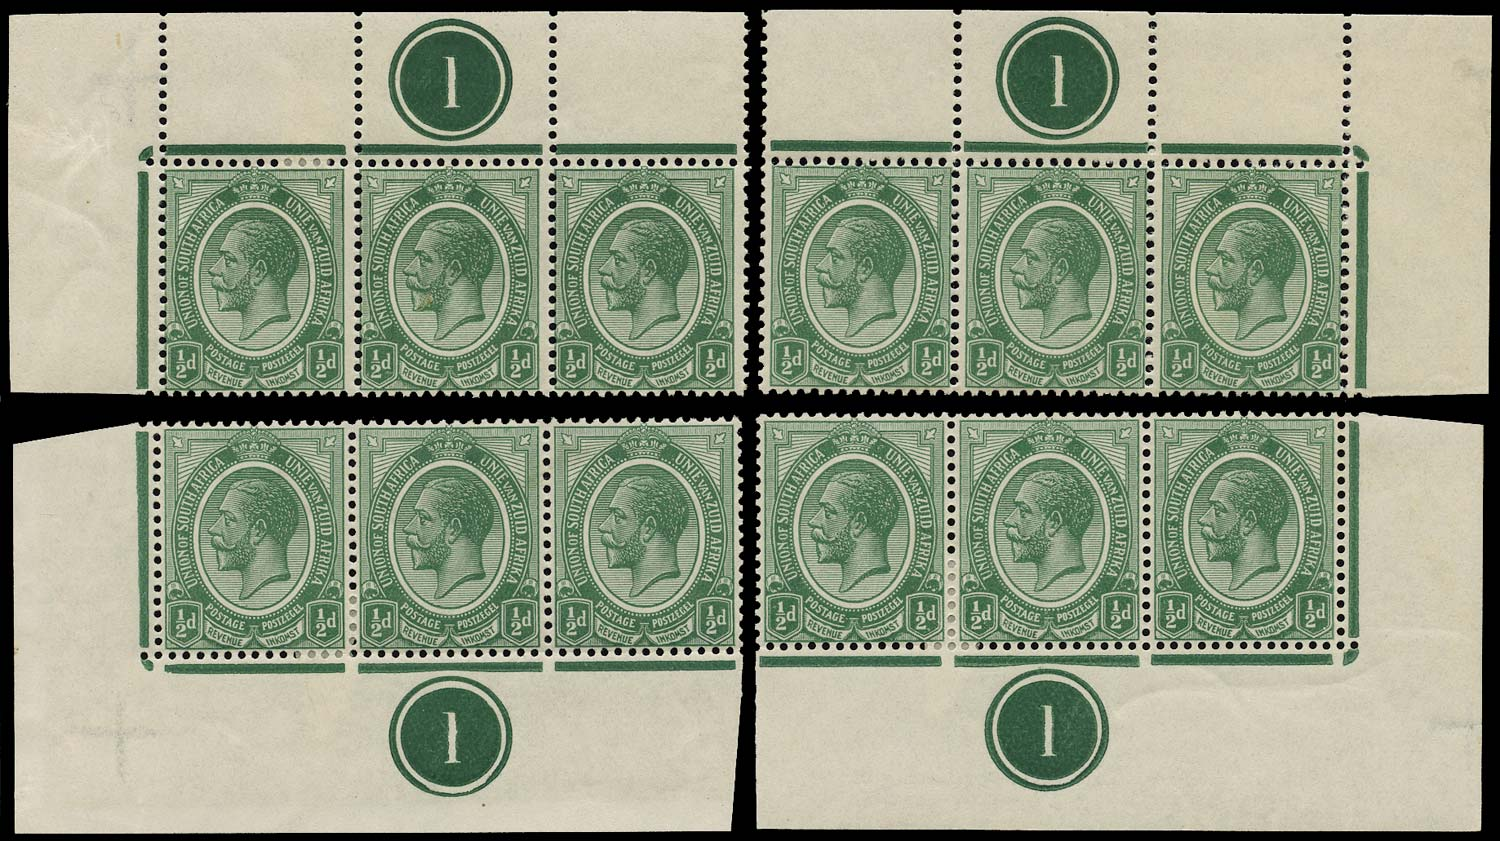 SOUTH AFRICA 1913  SG3 Mint King's Head ½d green plate 1 strips of 3